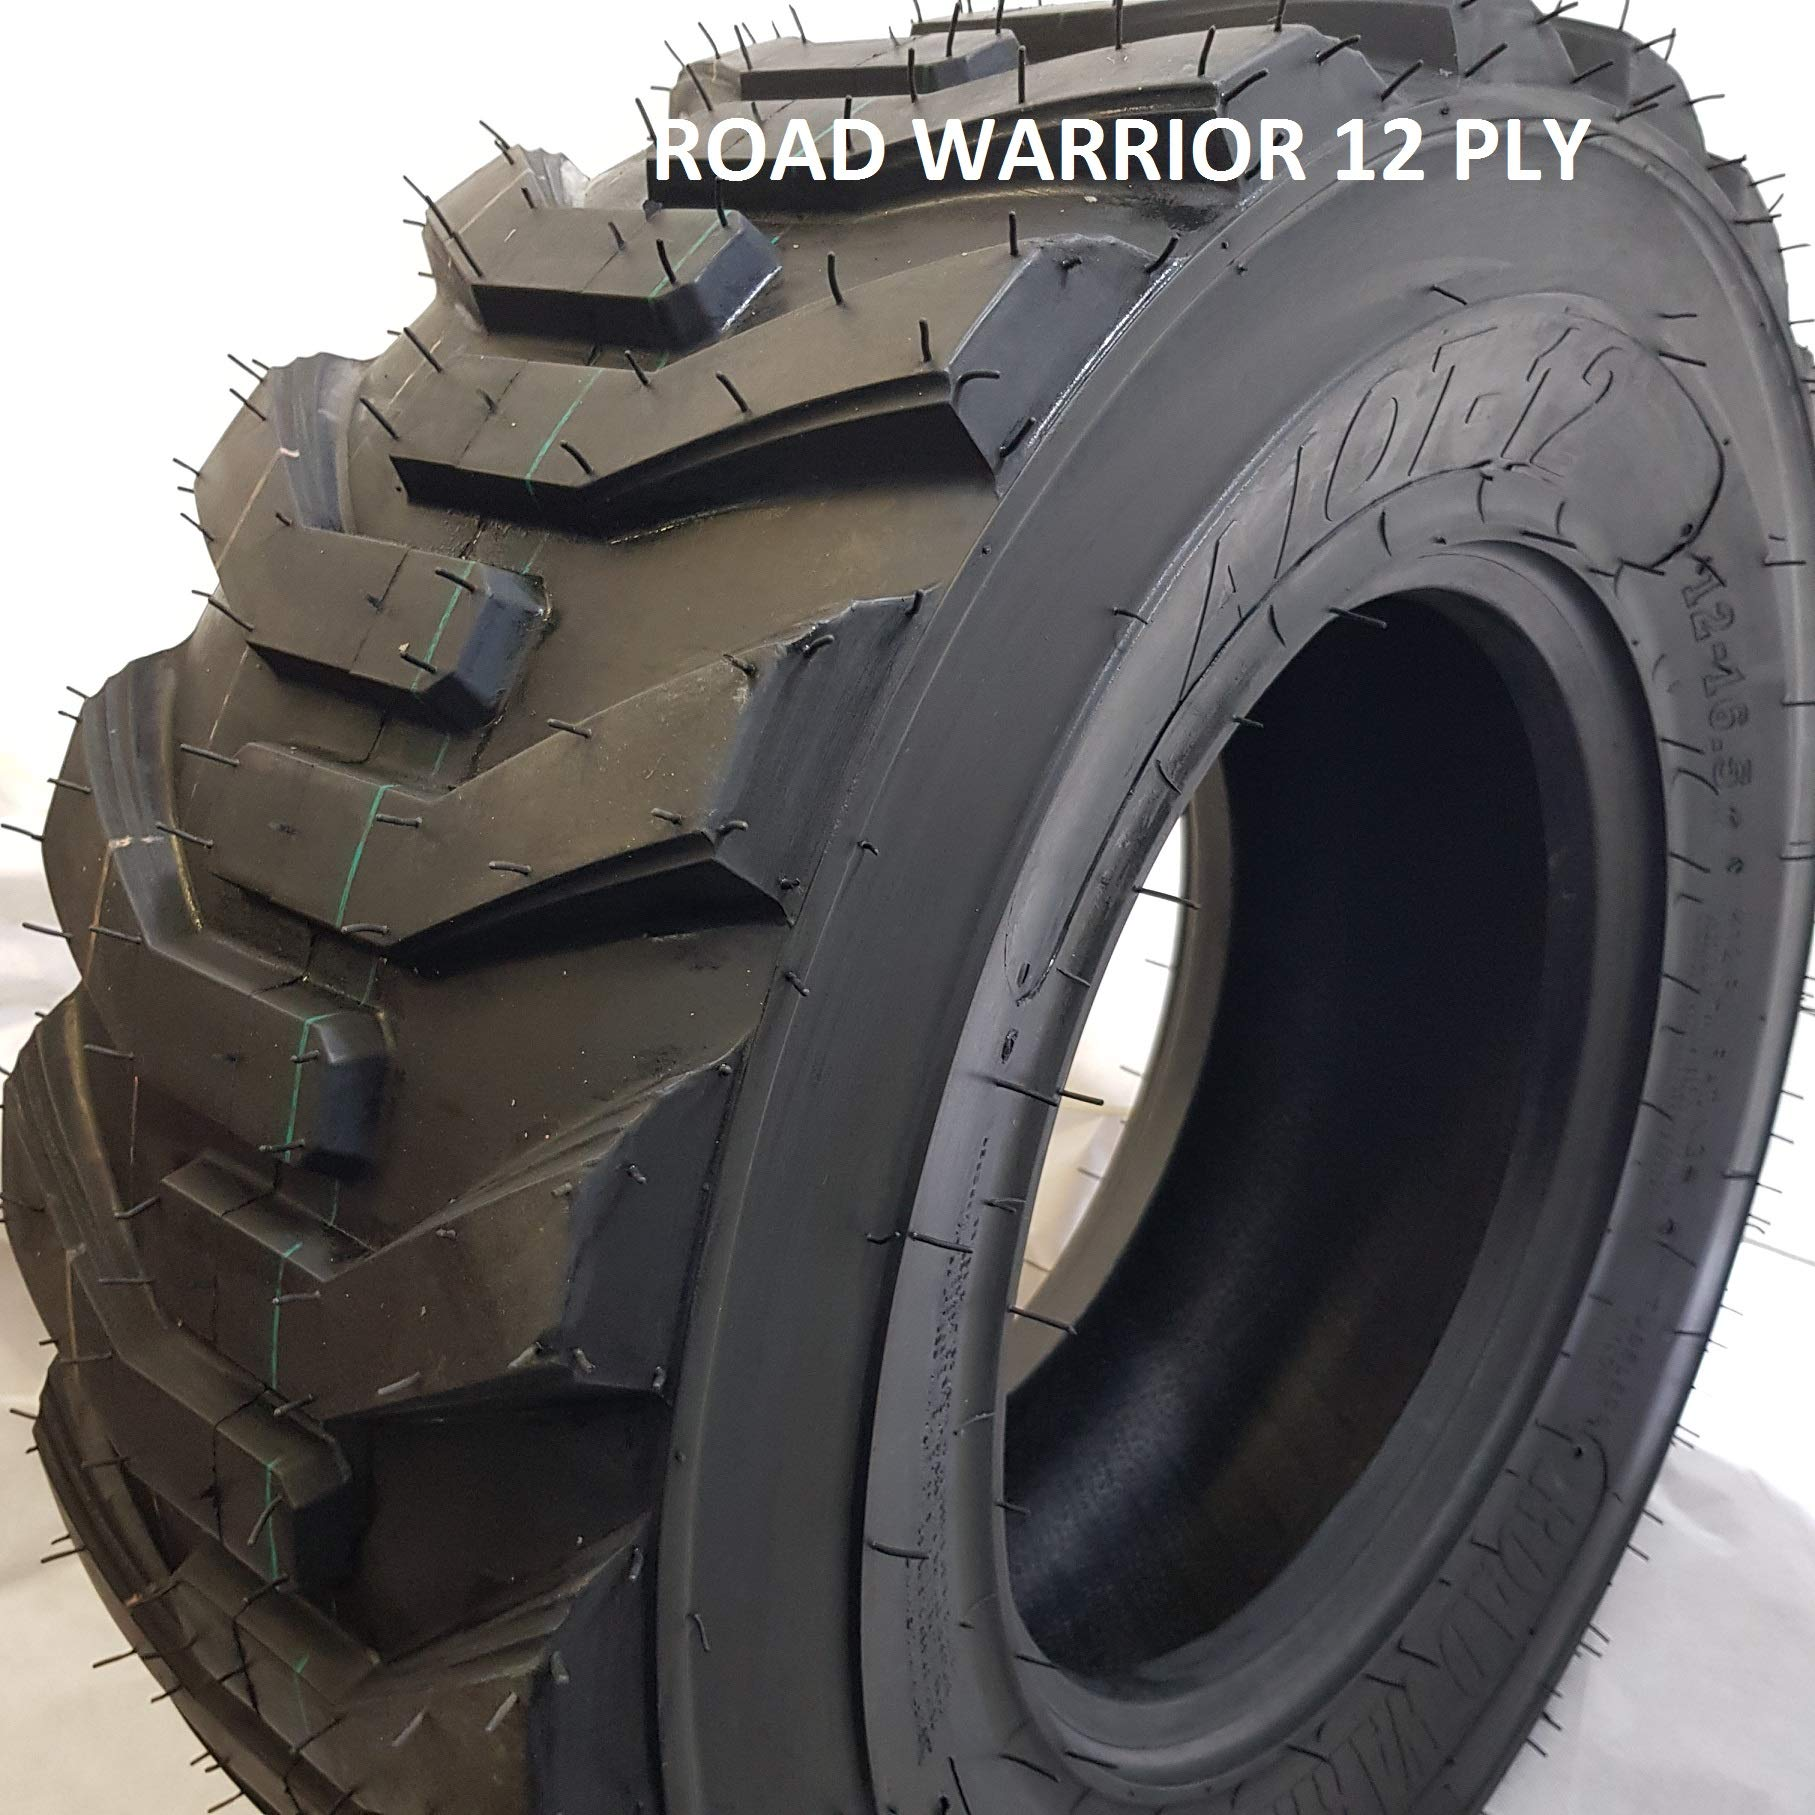 (1 TIRE) 12-16.5 ROAD WARRIOR AIOT-12 SKID STEER TIRE, 12 PLY, NHS SKS HEAVY DUTY WEIGH 65 LBS